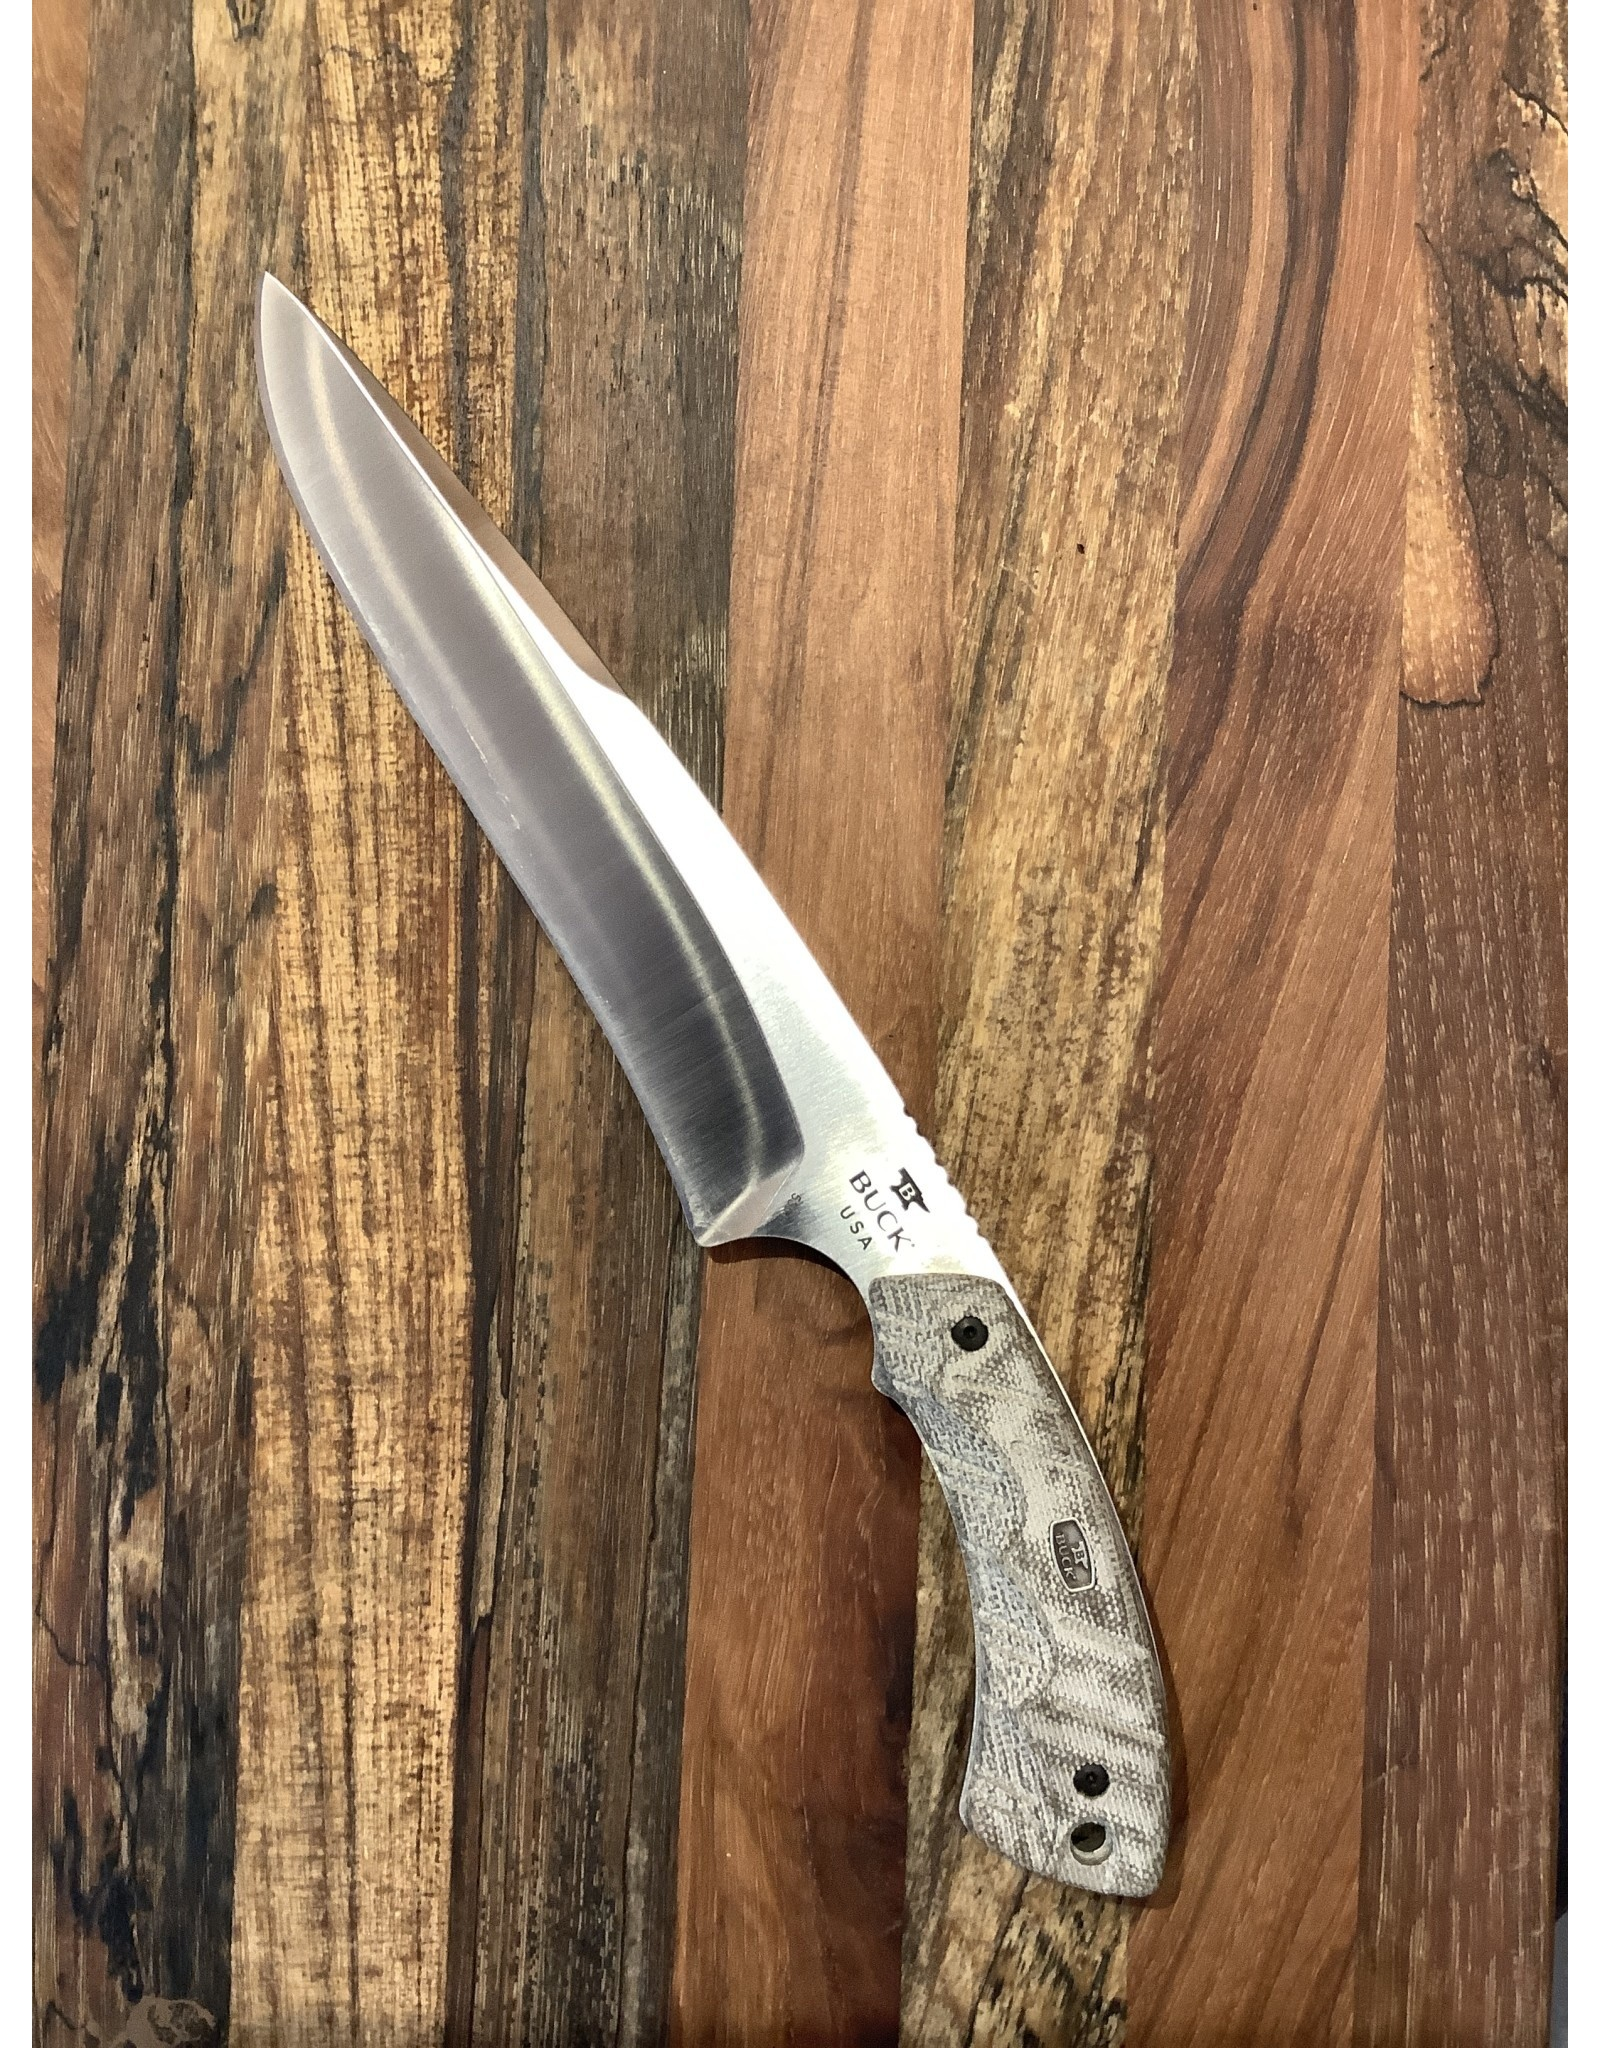 Buck BUCK Open Season Moose Skinner OD Green Micarta